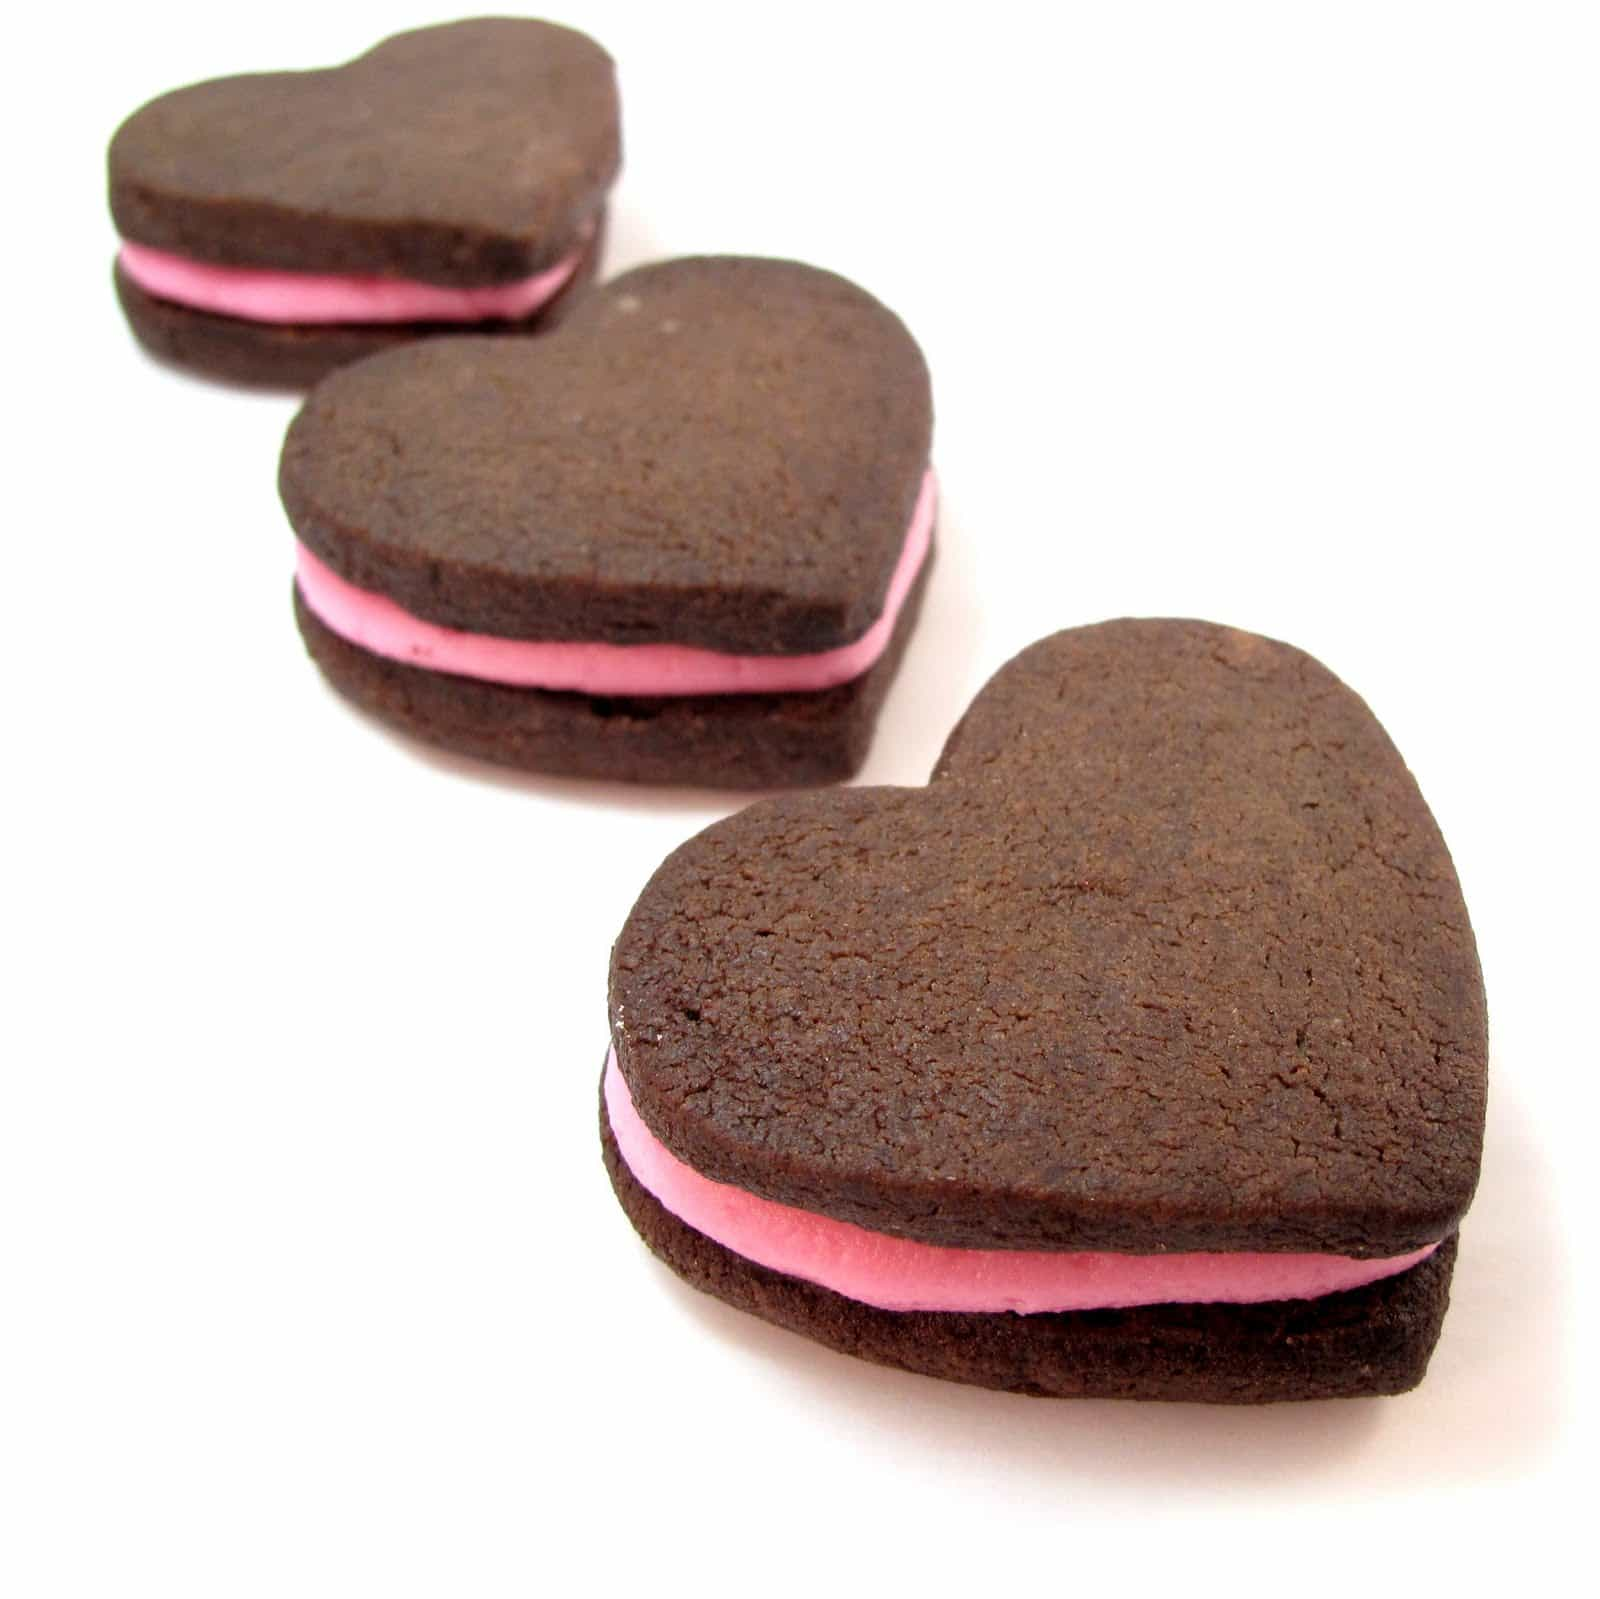 chocolate heart sandwich cookies for Valentine's Day